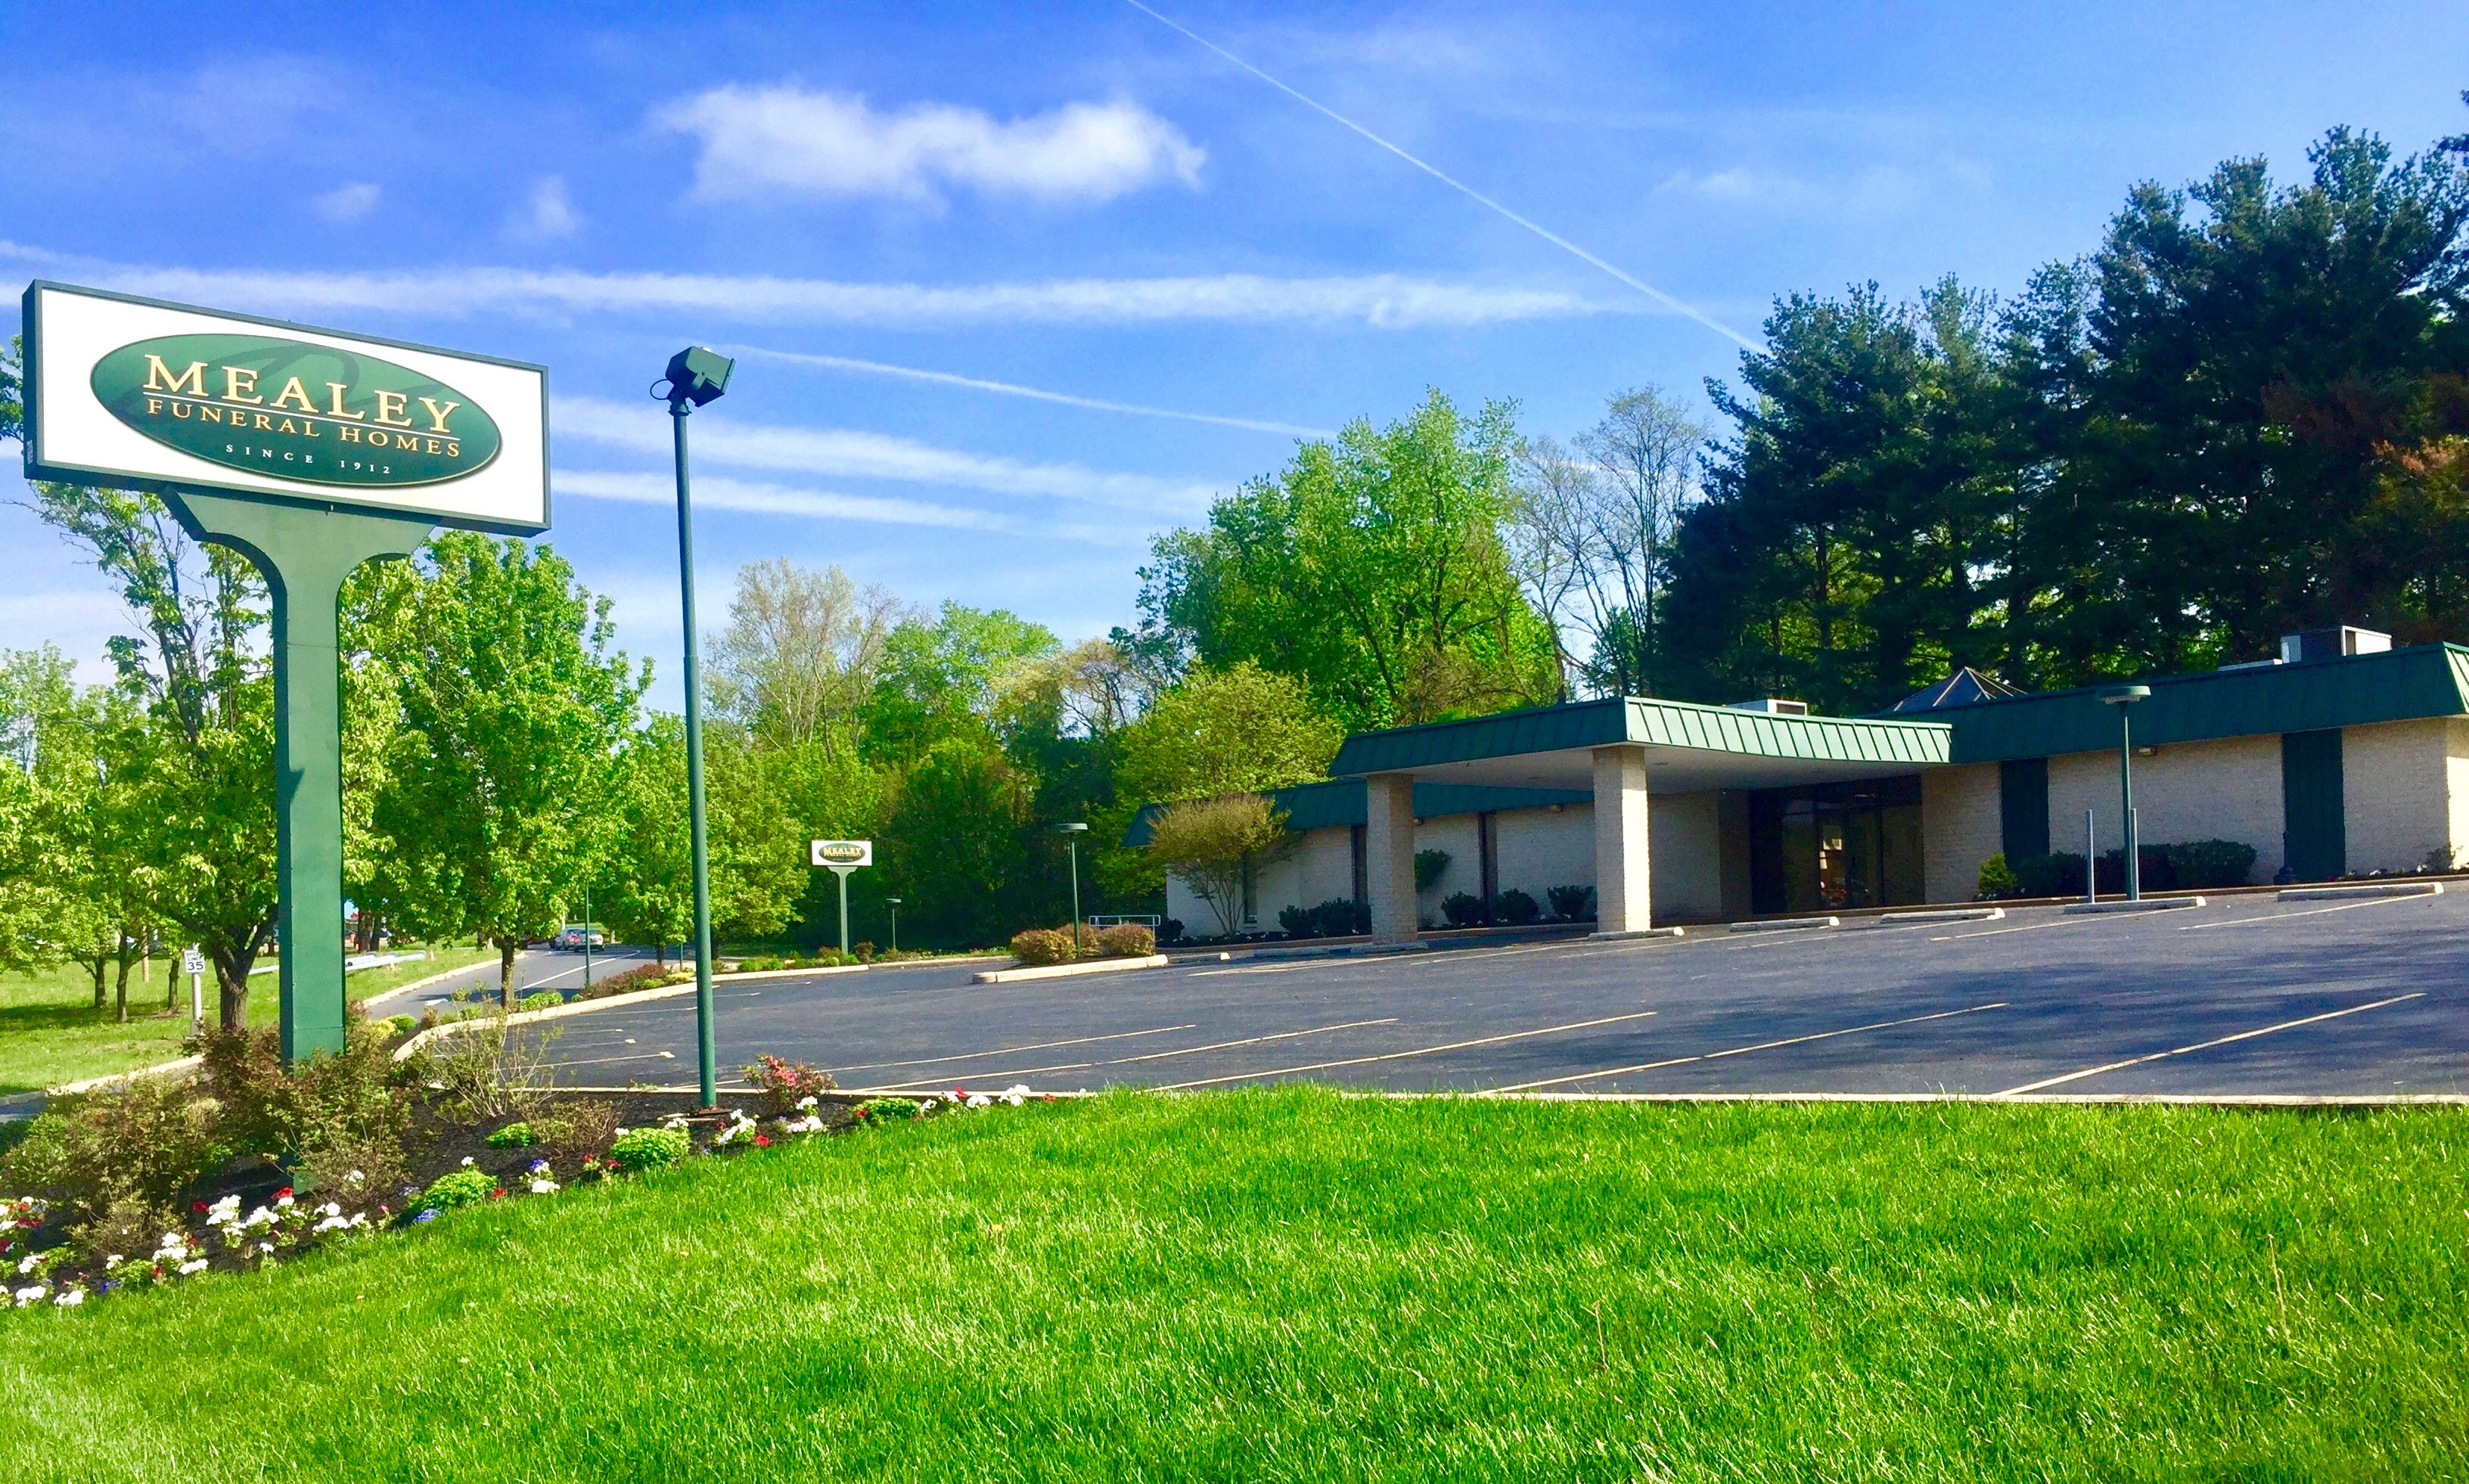 Photo of Mealey Funeral Homes & Crematory